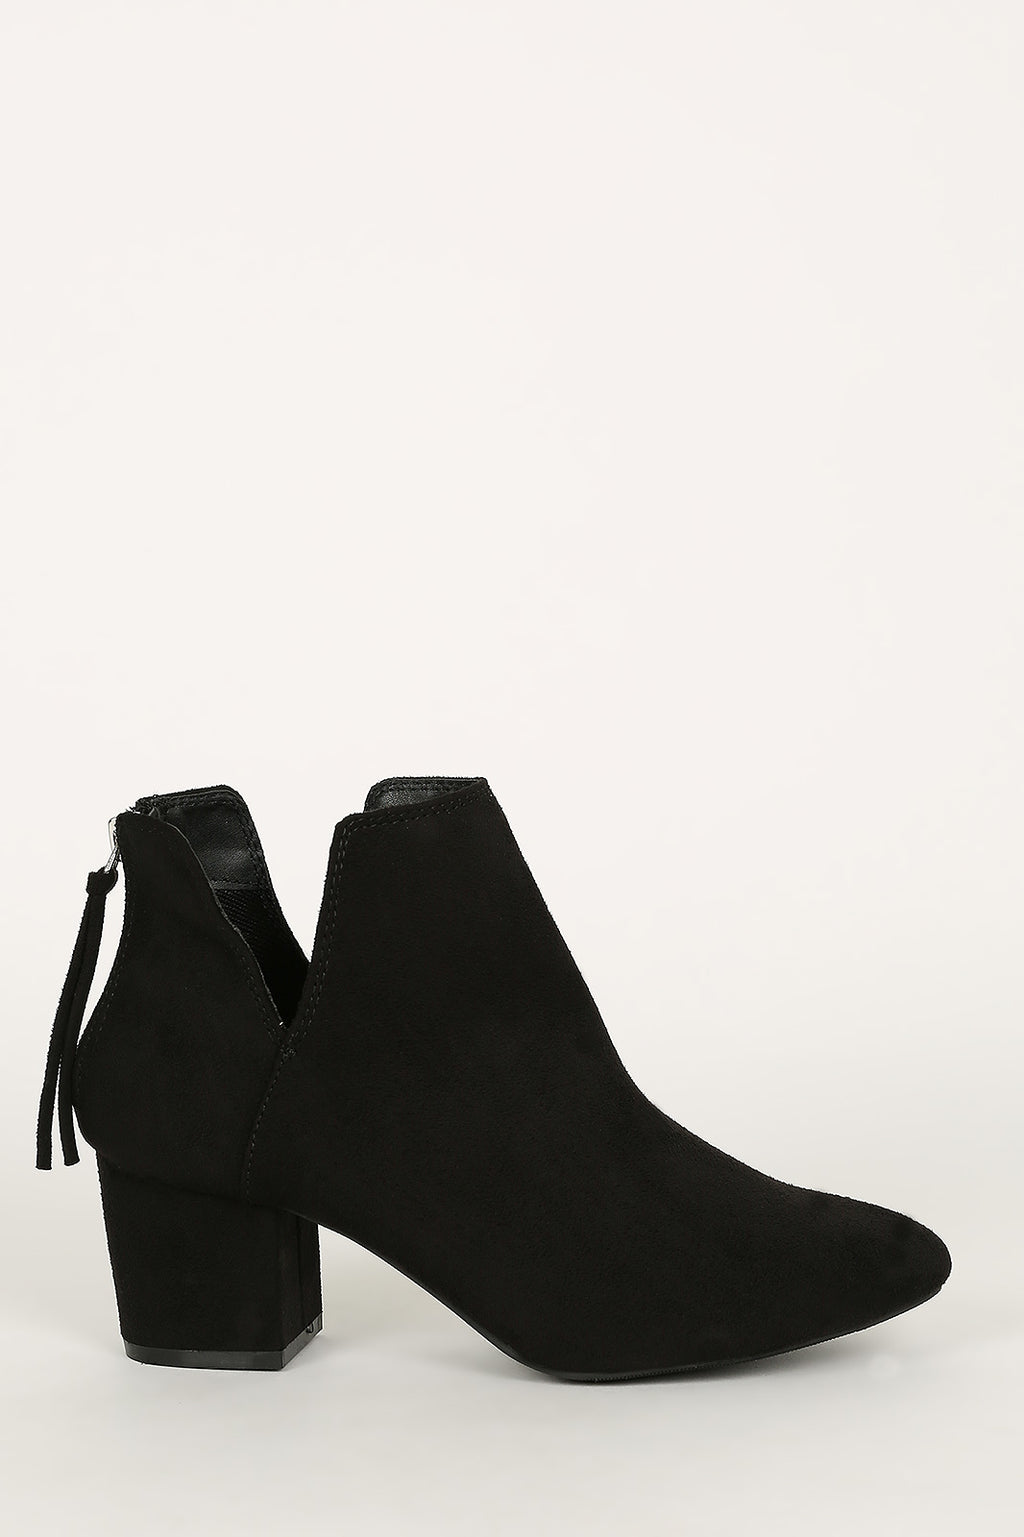 Uptown Chic - Black Side Slit Ankle Booties